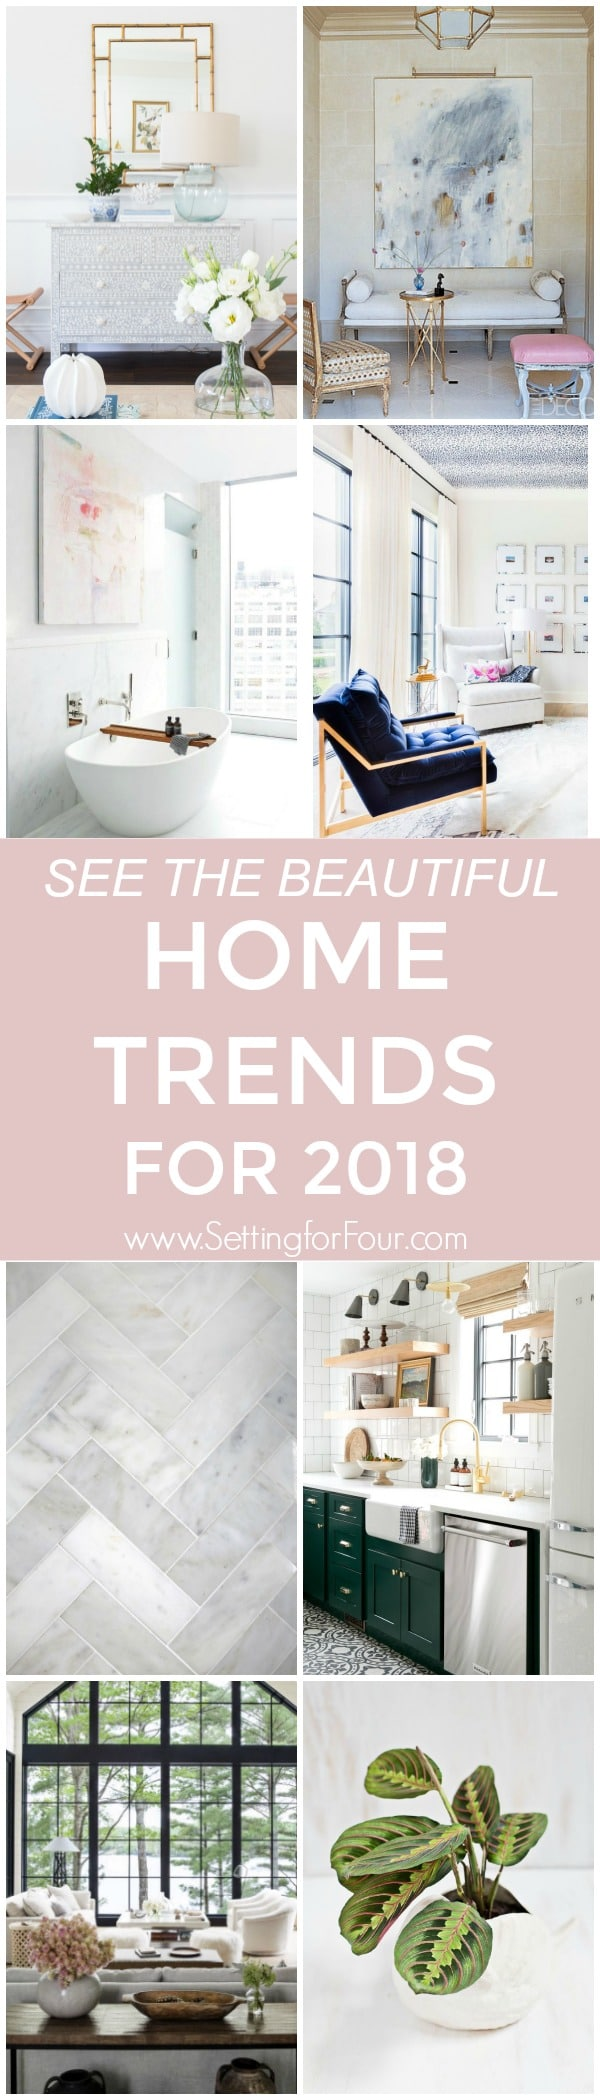 Home trends for 2018 in design and decor setting for four for Bathroom interior design trends 2018